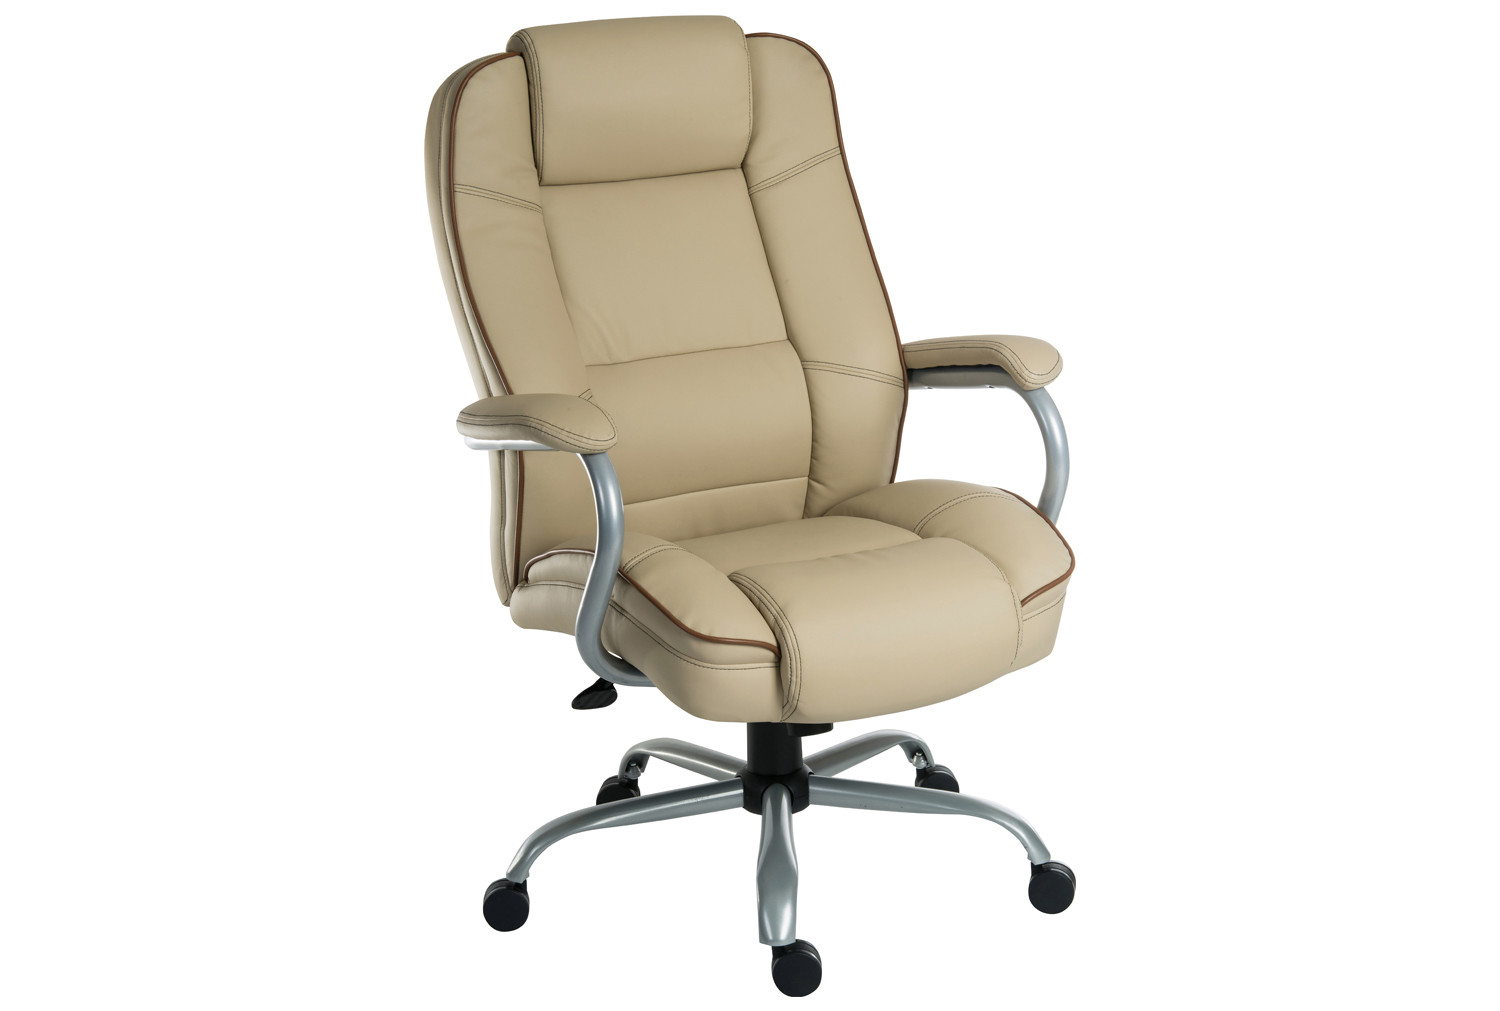 Colossal duo executive cream leather chair